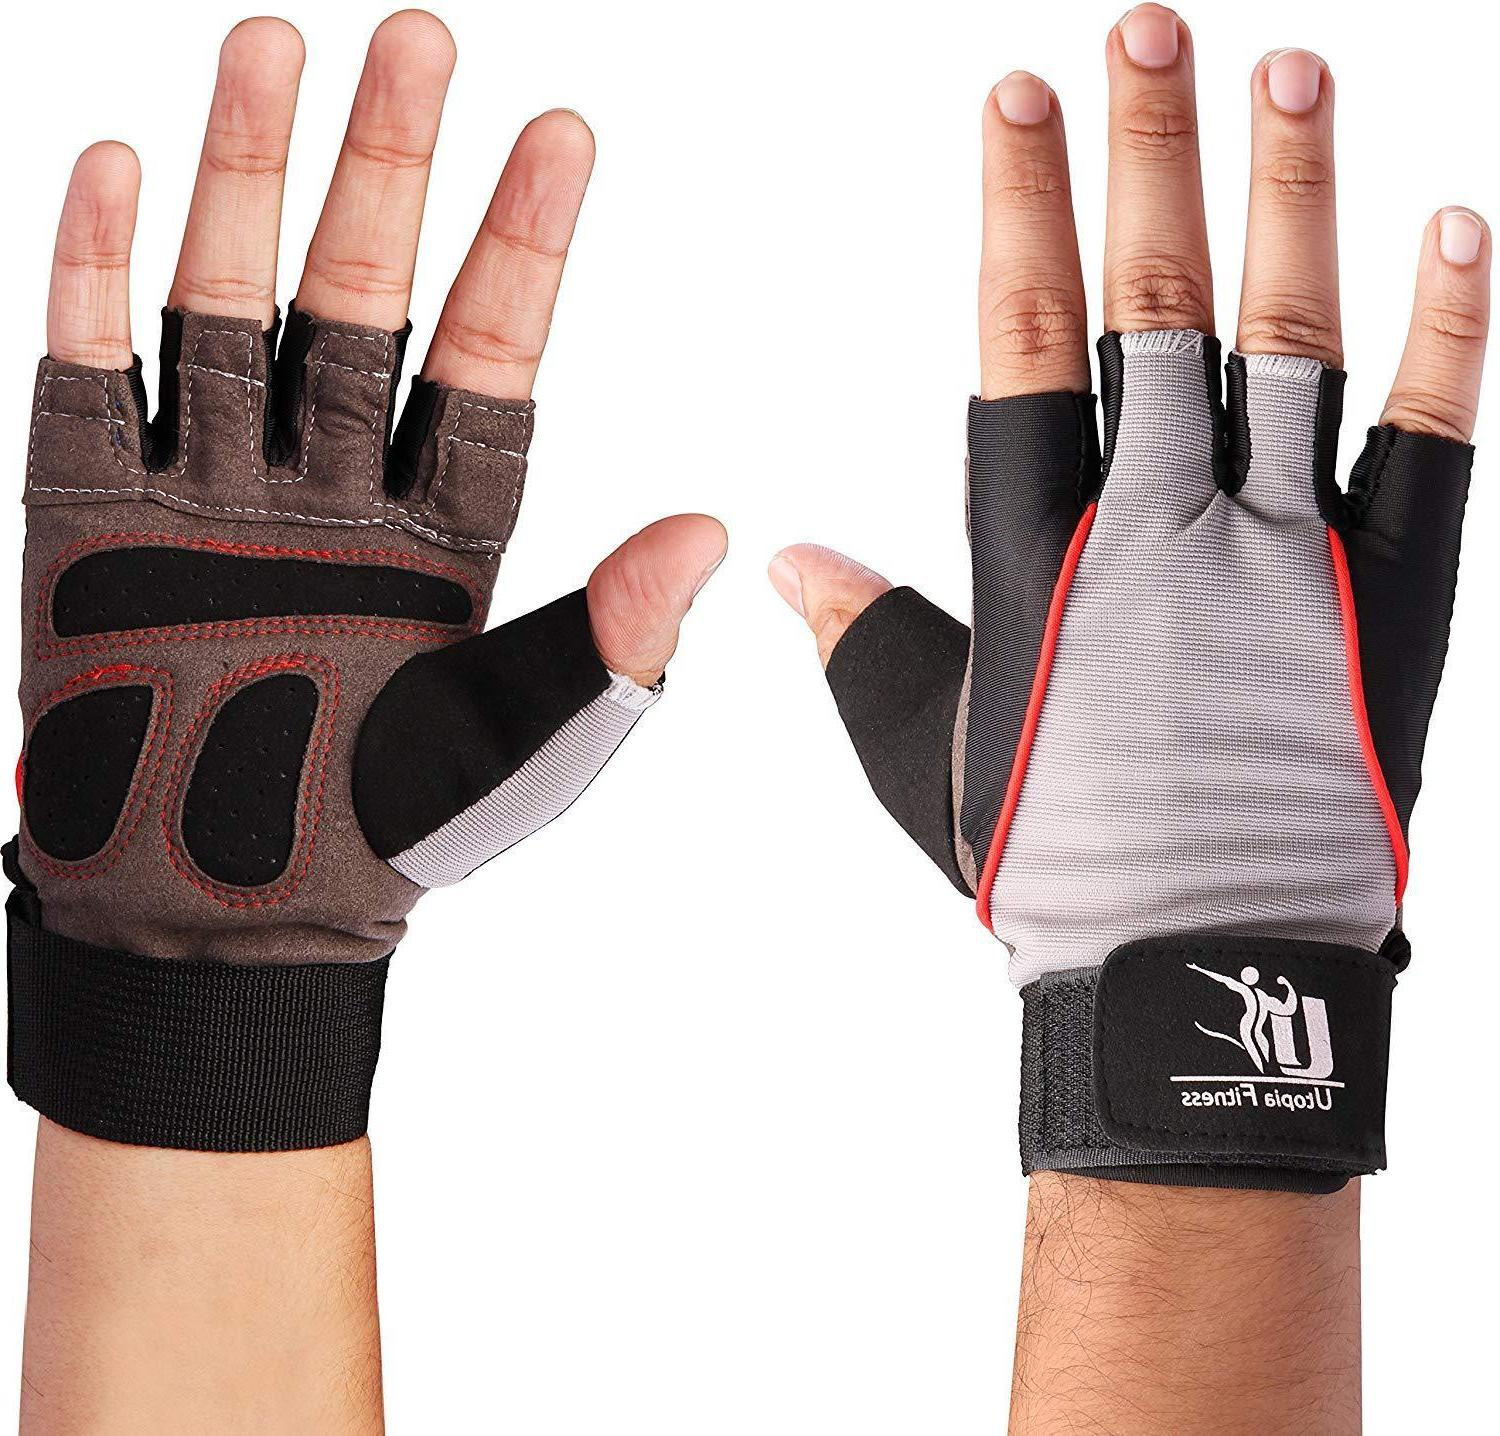 gym gloves workout weight lifting exercise sport